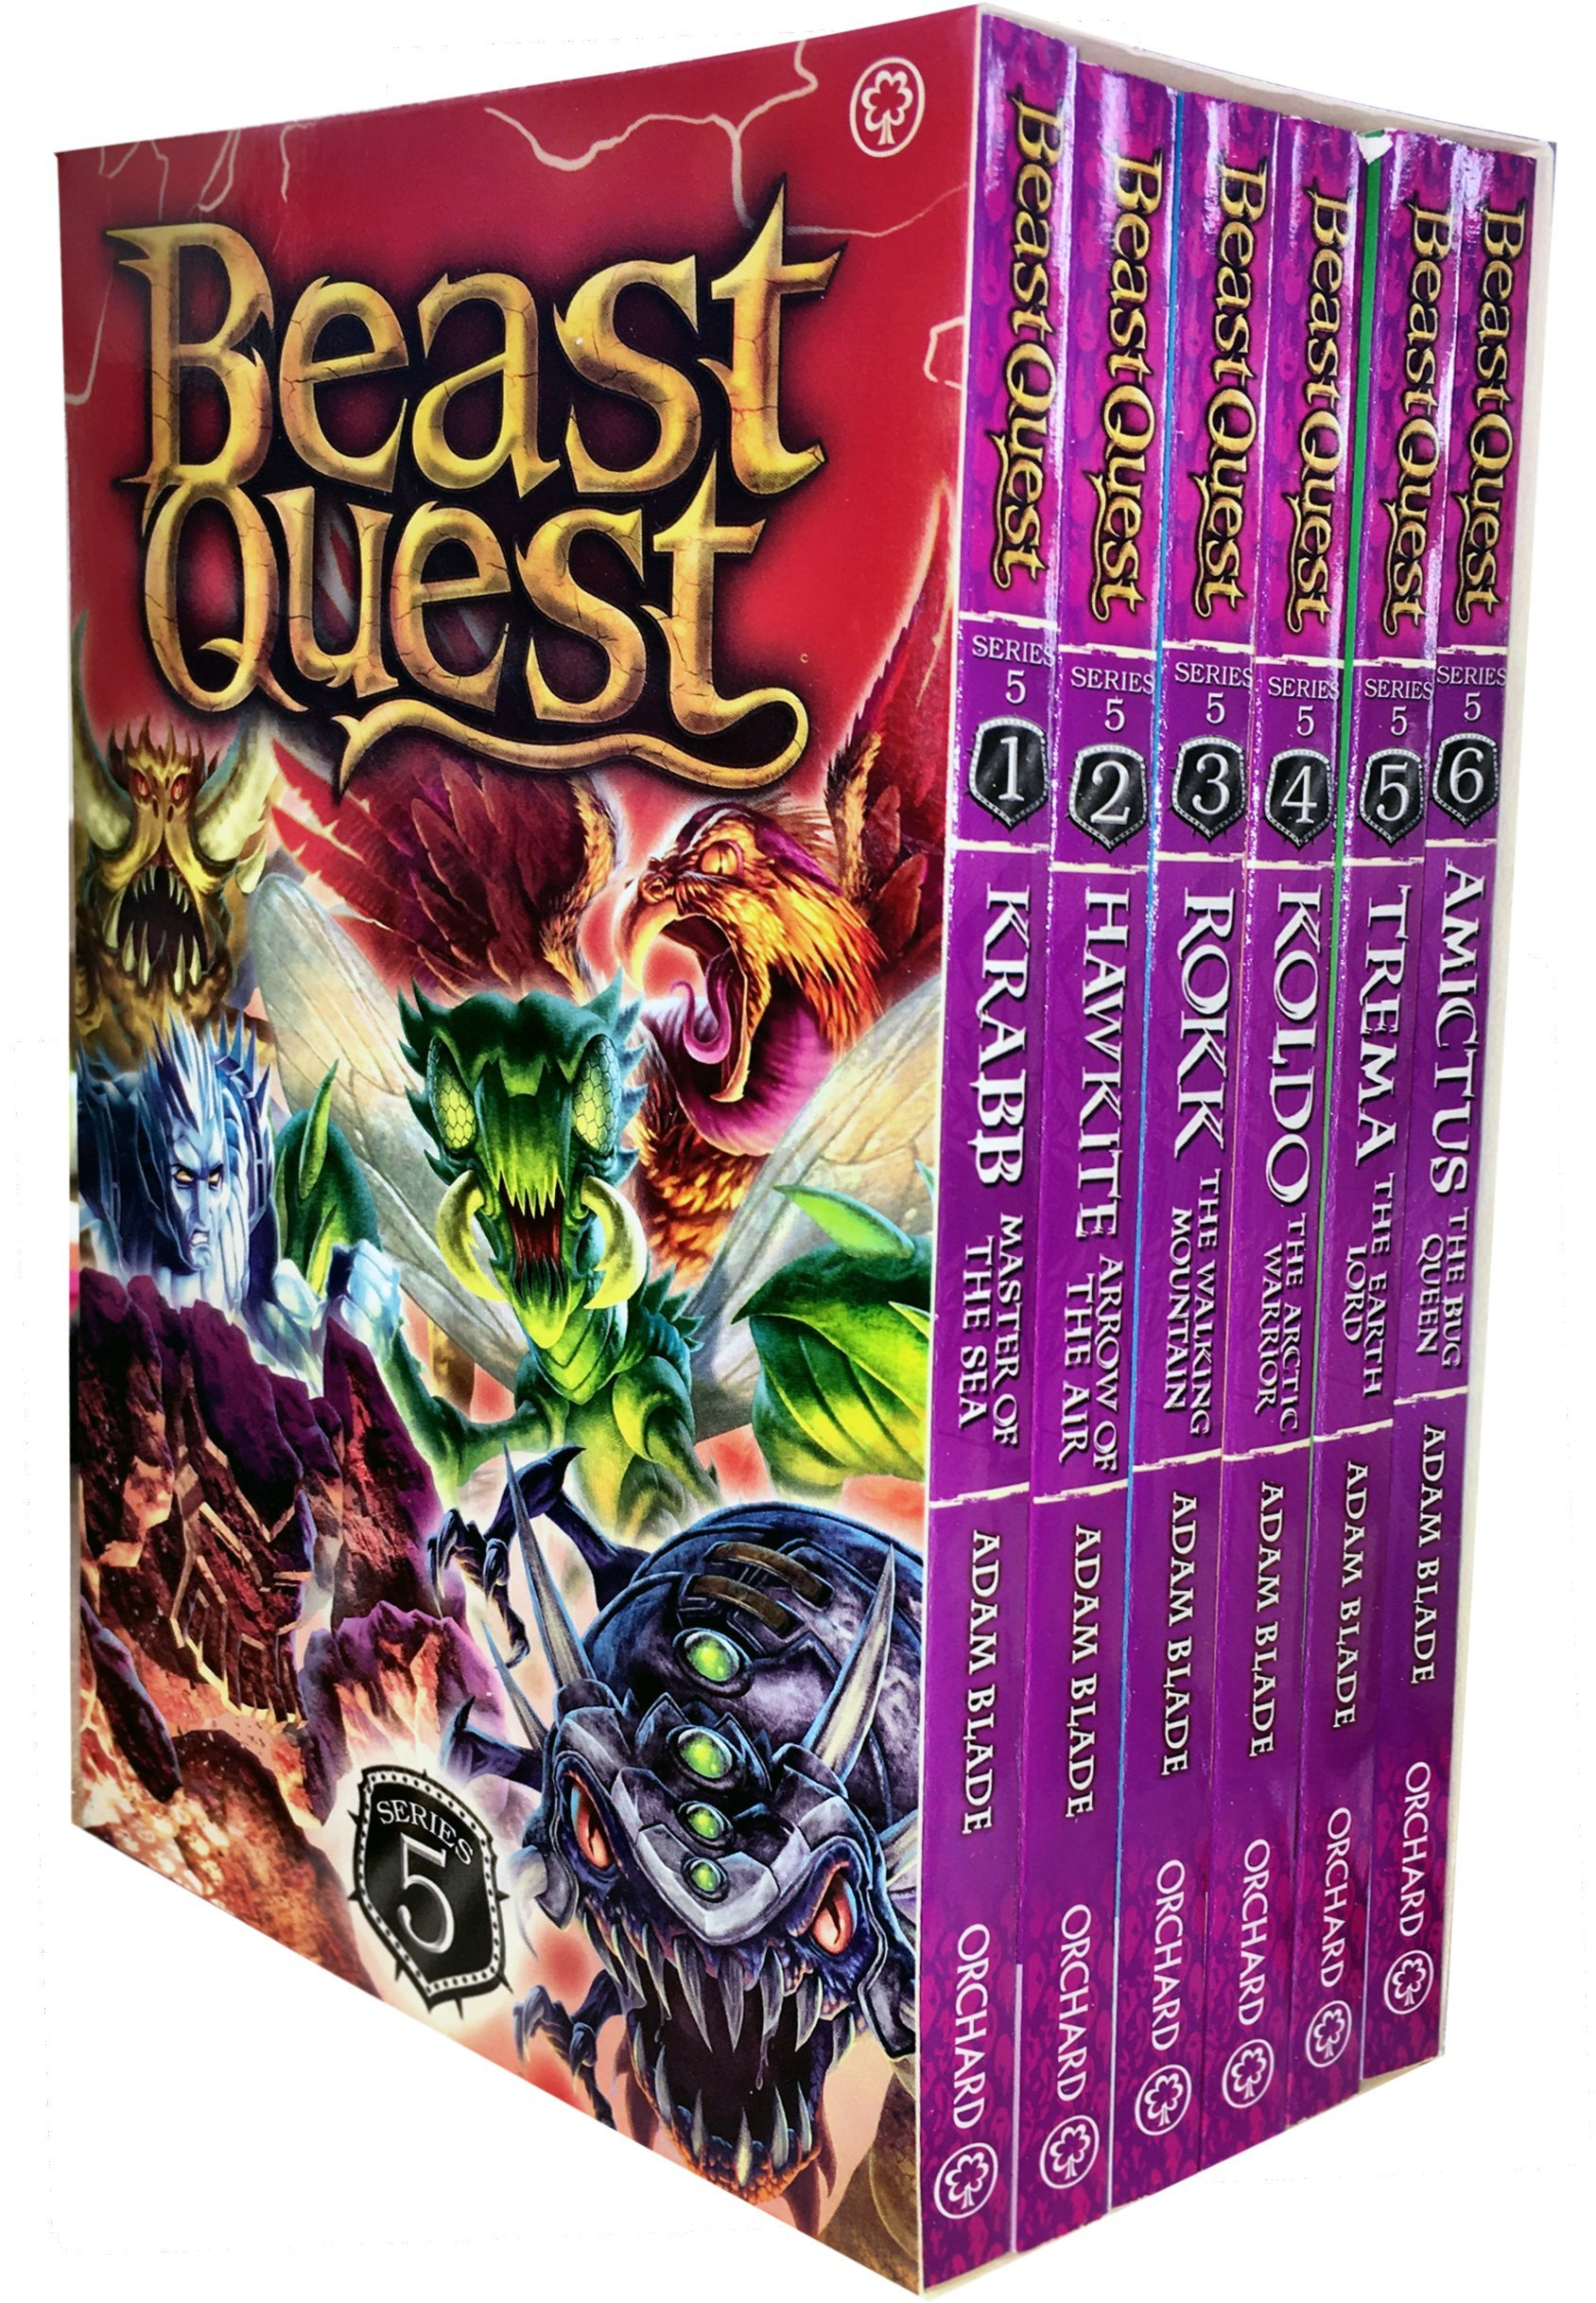 Read Online Beast Quest Series 5 The Shade of Death 6 Books Collection Box Set by Adam Blade pdf epub